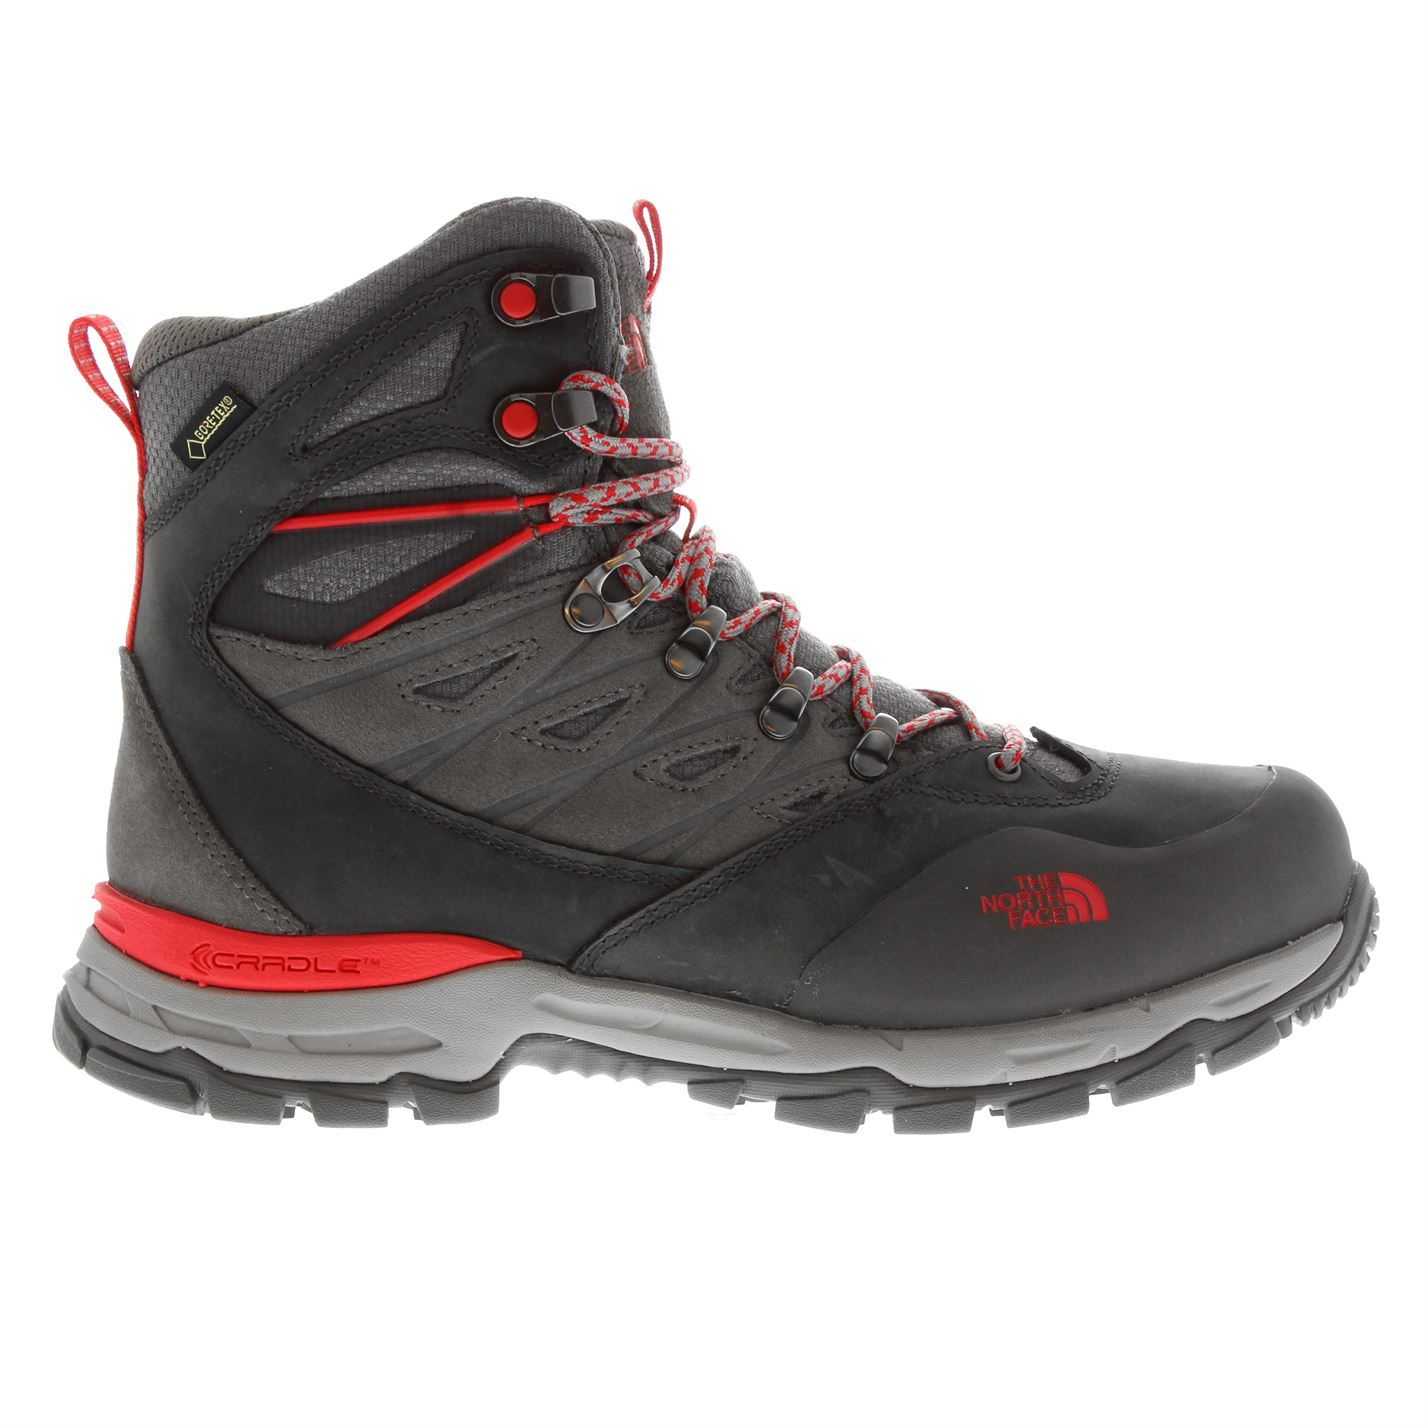 The-North-Face-Hedgehog-Trek-GTX-Walking-Boots-Ladies-Laces-Fastened-Water